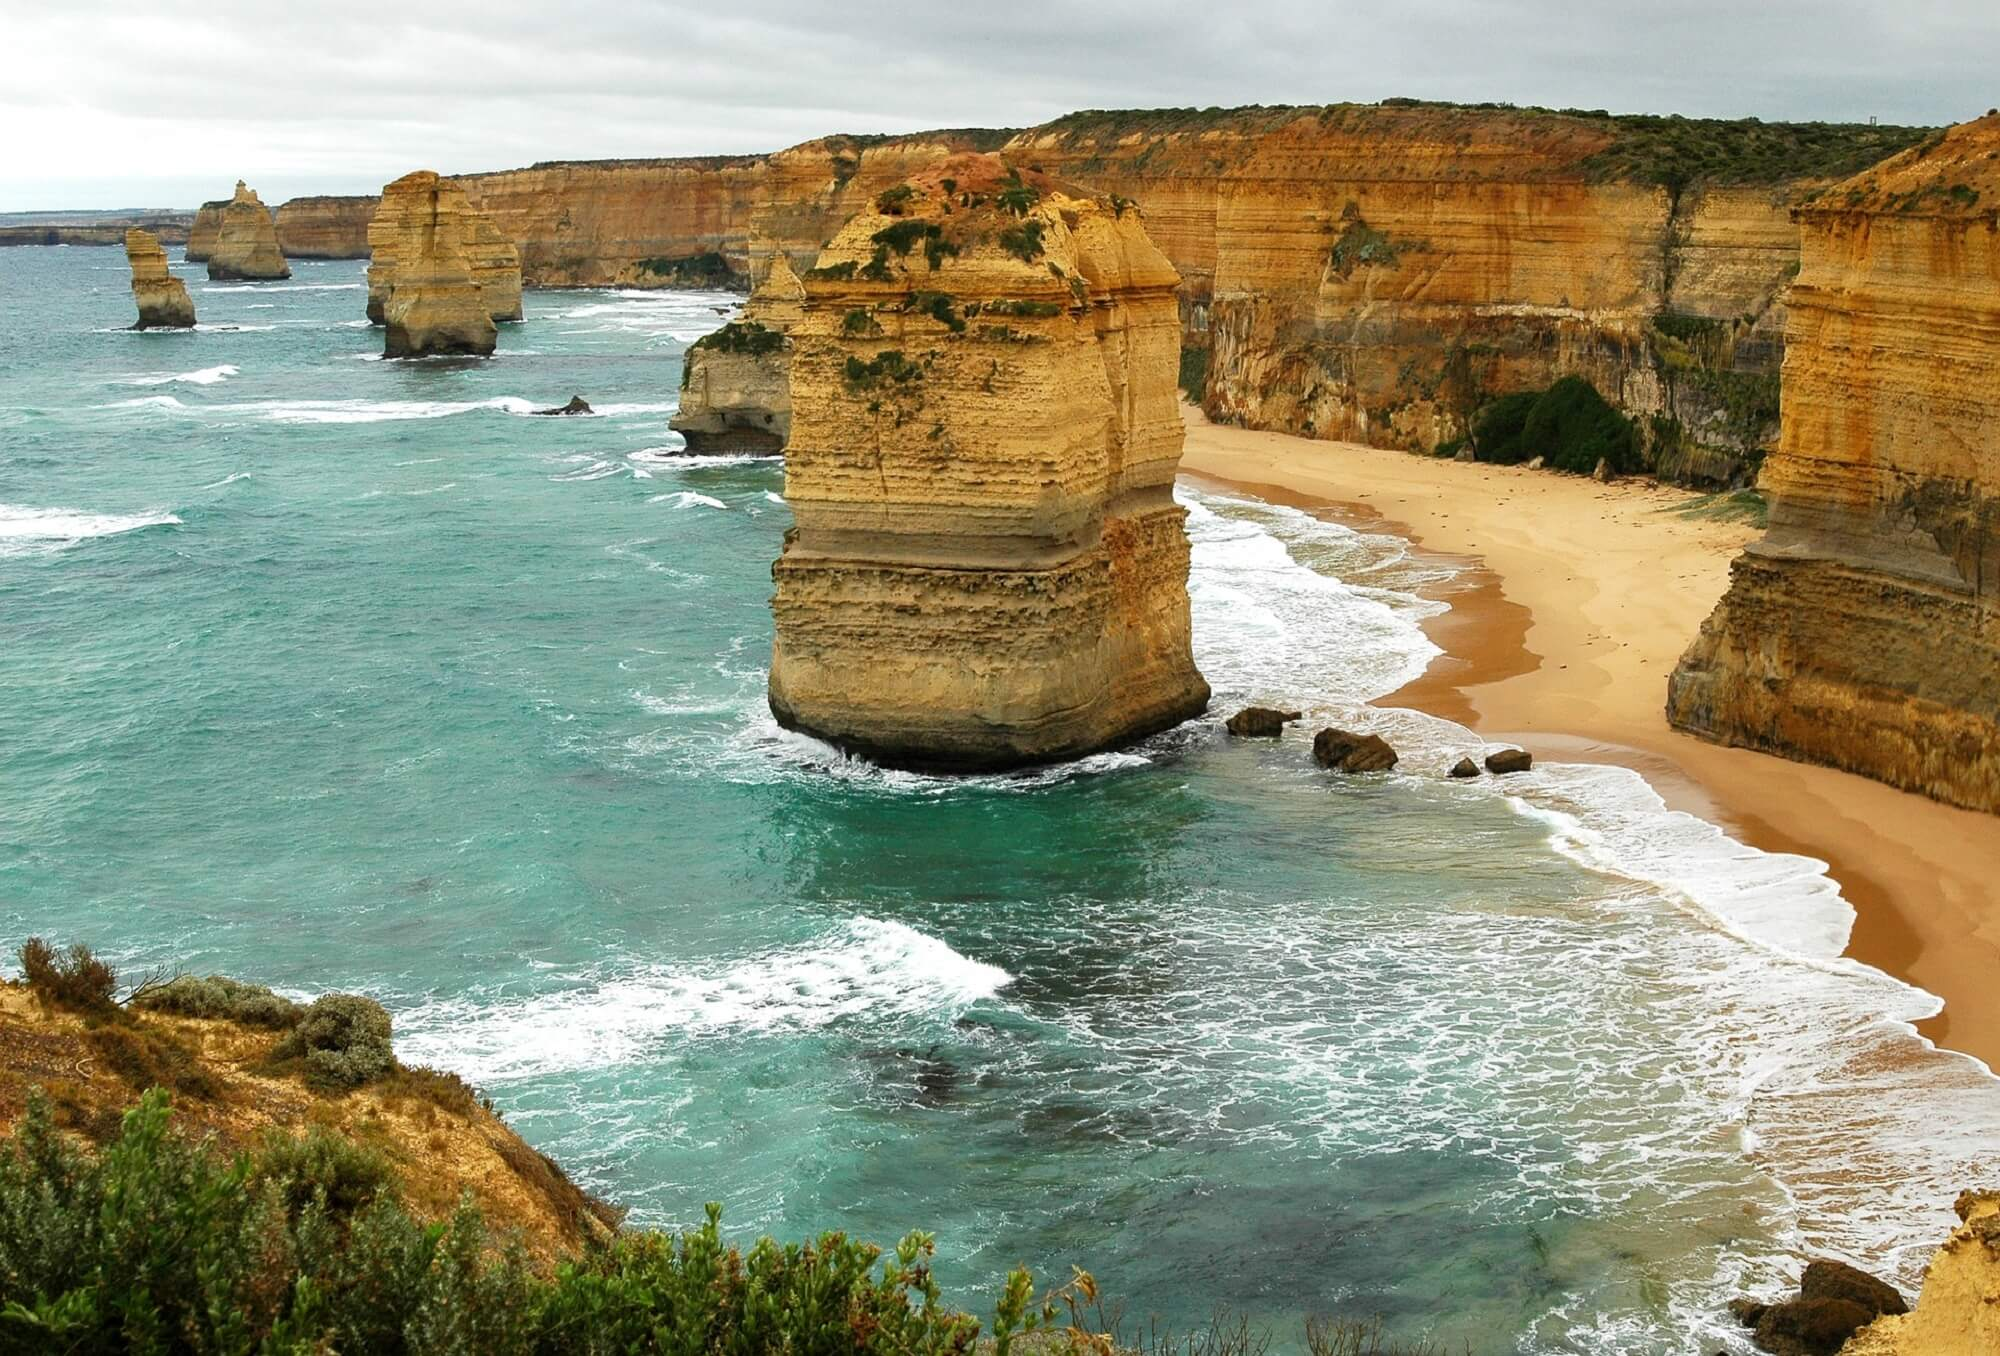 What towns are located on the Great Ocean Road?